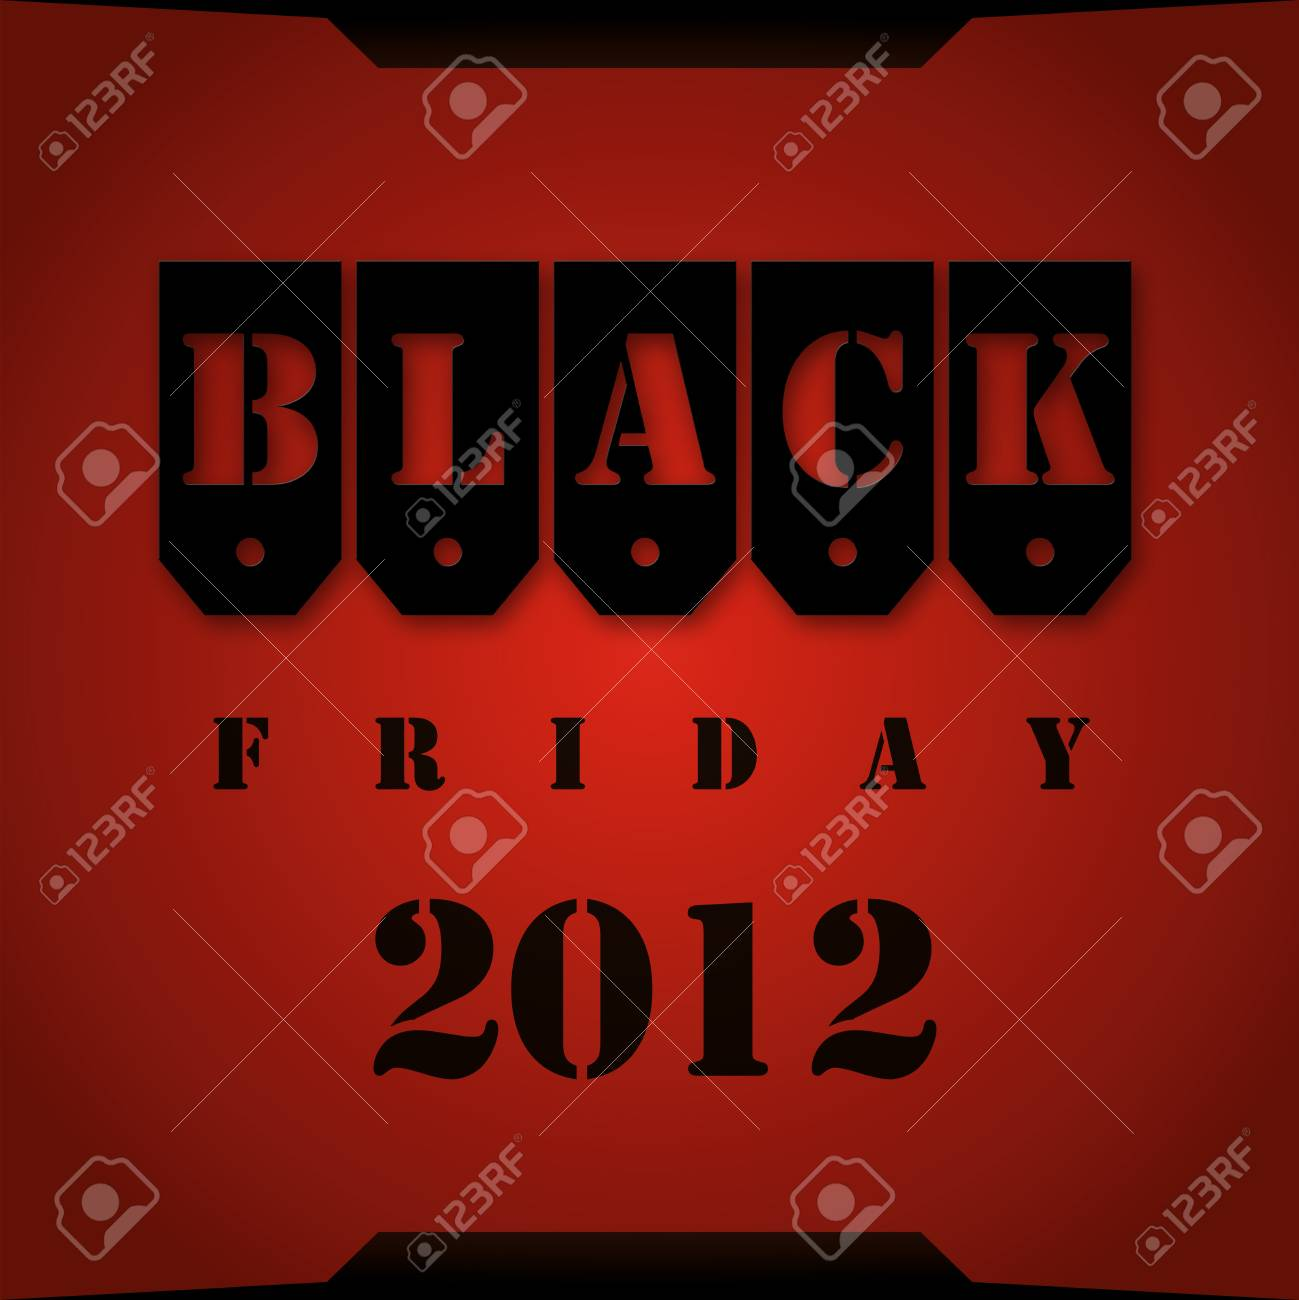 Black Friday 2012 red background Stock Photo - 16209517